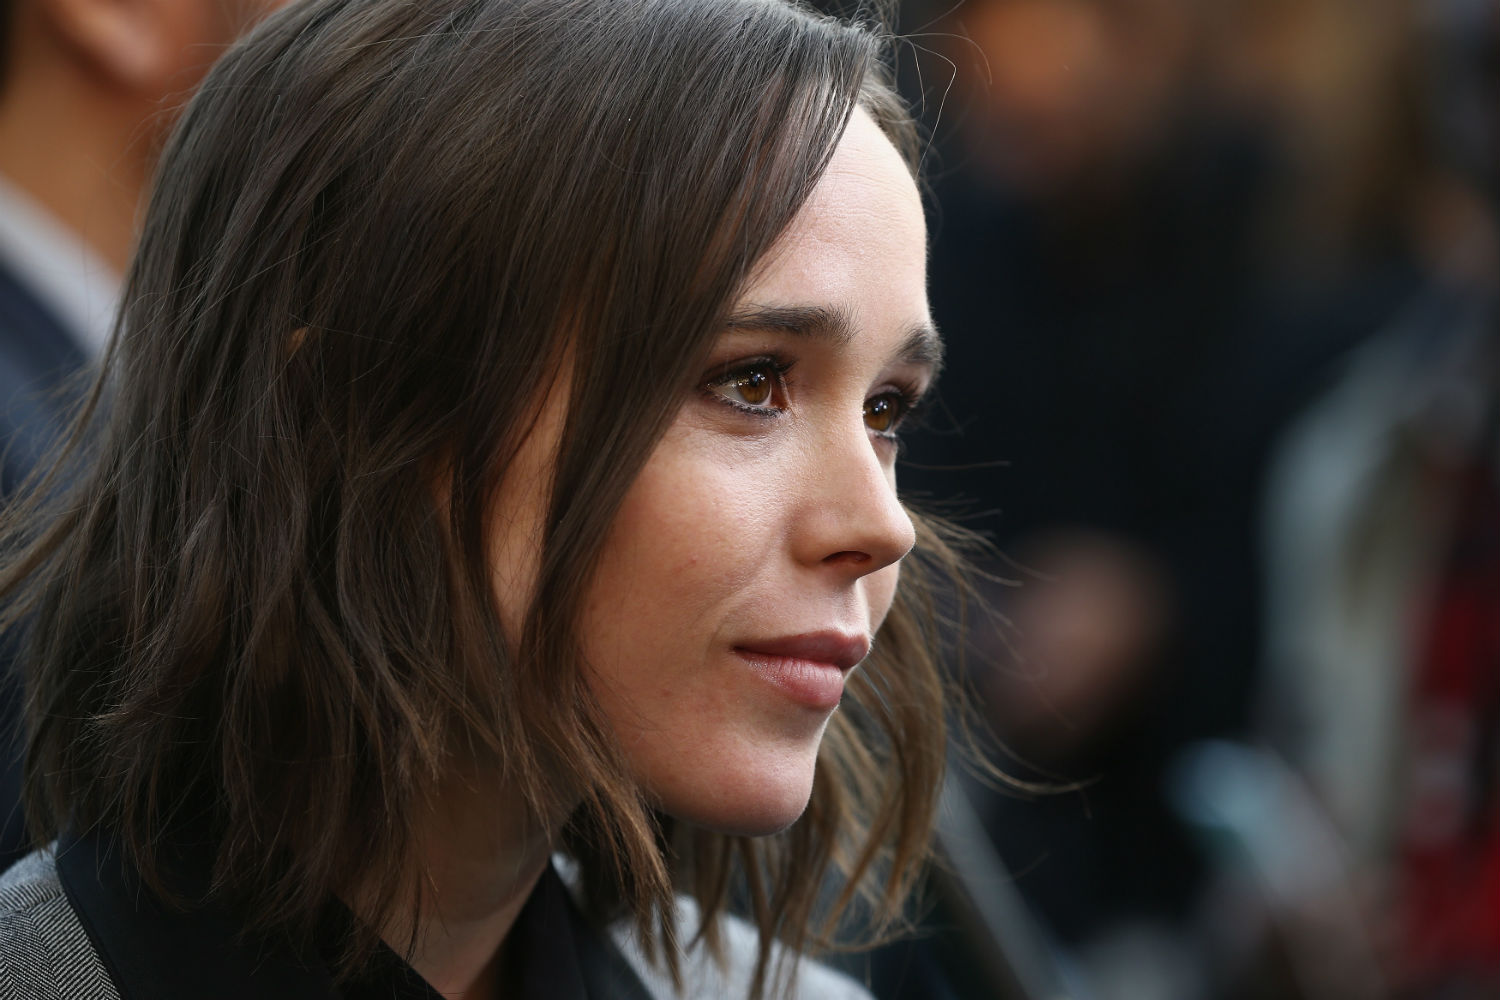 Ellen Page Rallies Support For LGBT Rights During Stirring